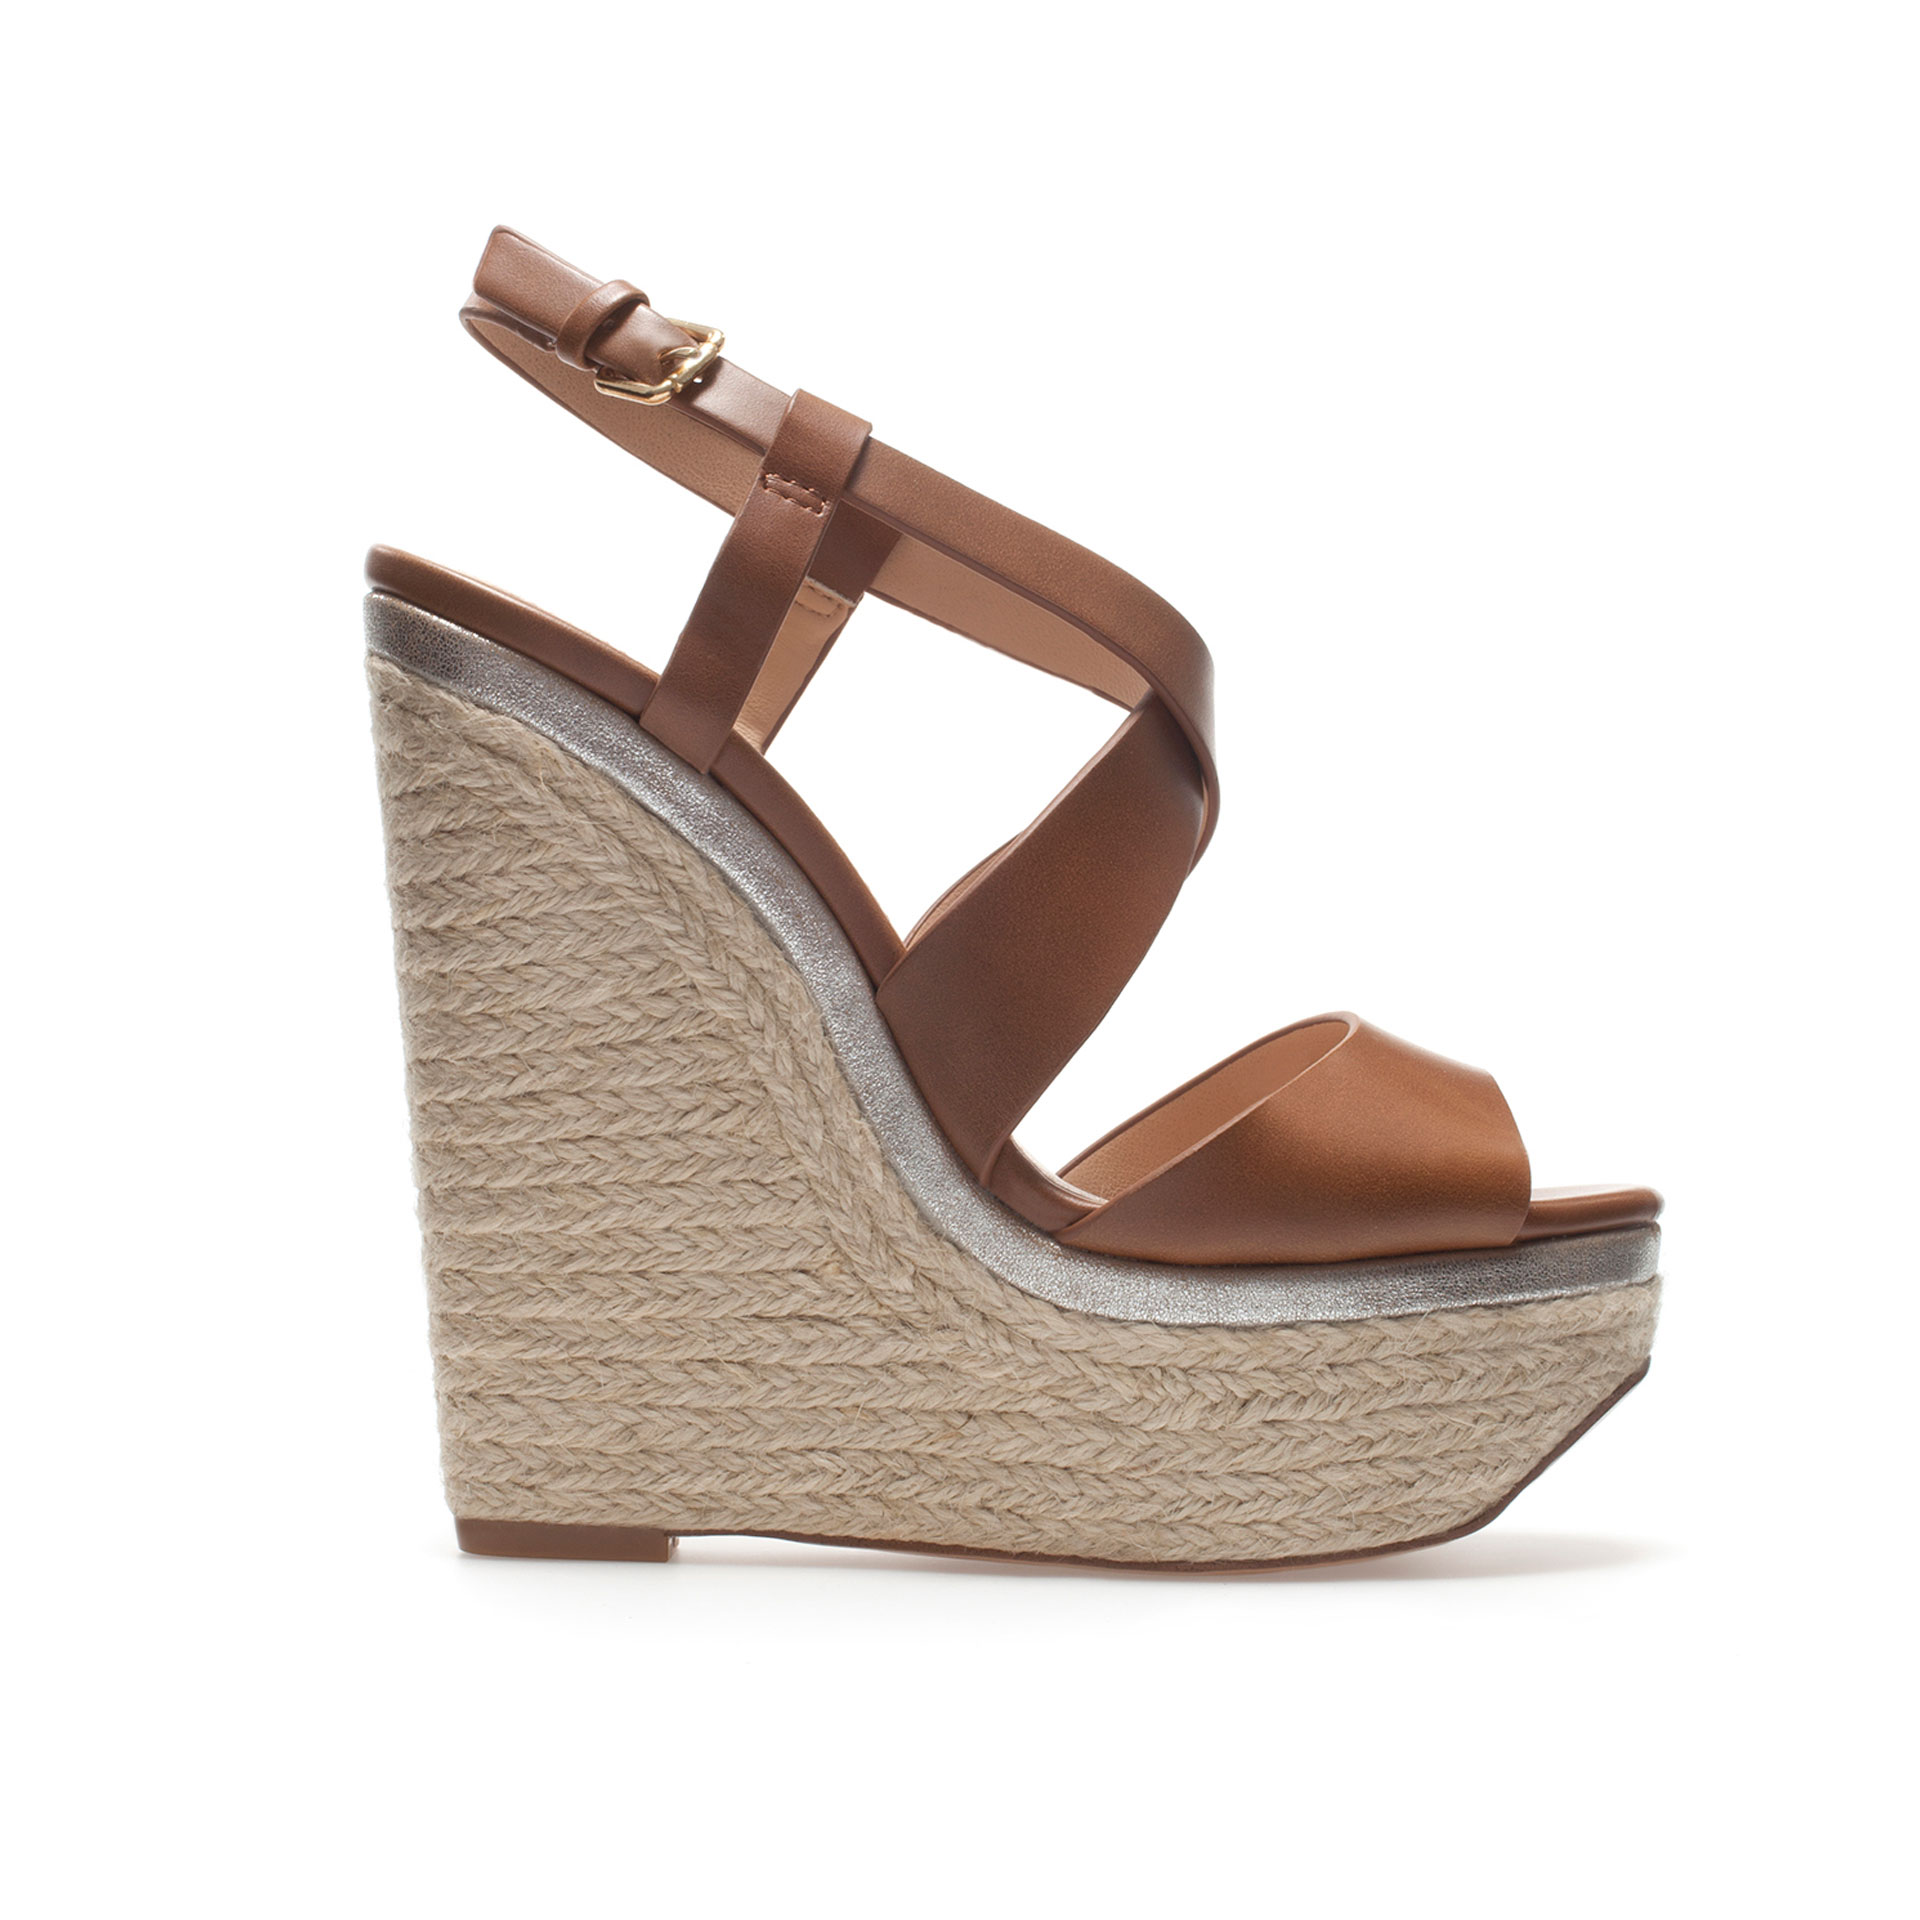 Zara Brown Platform Shoes